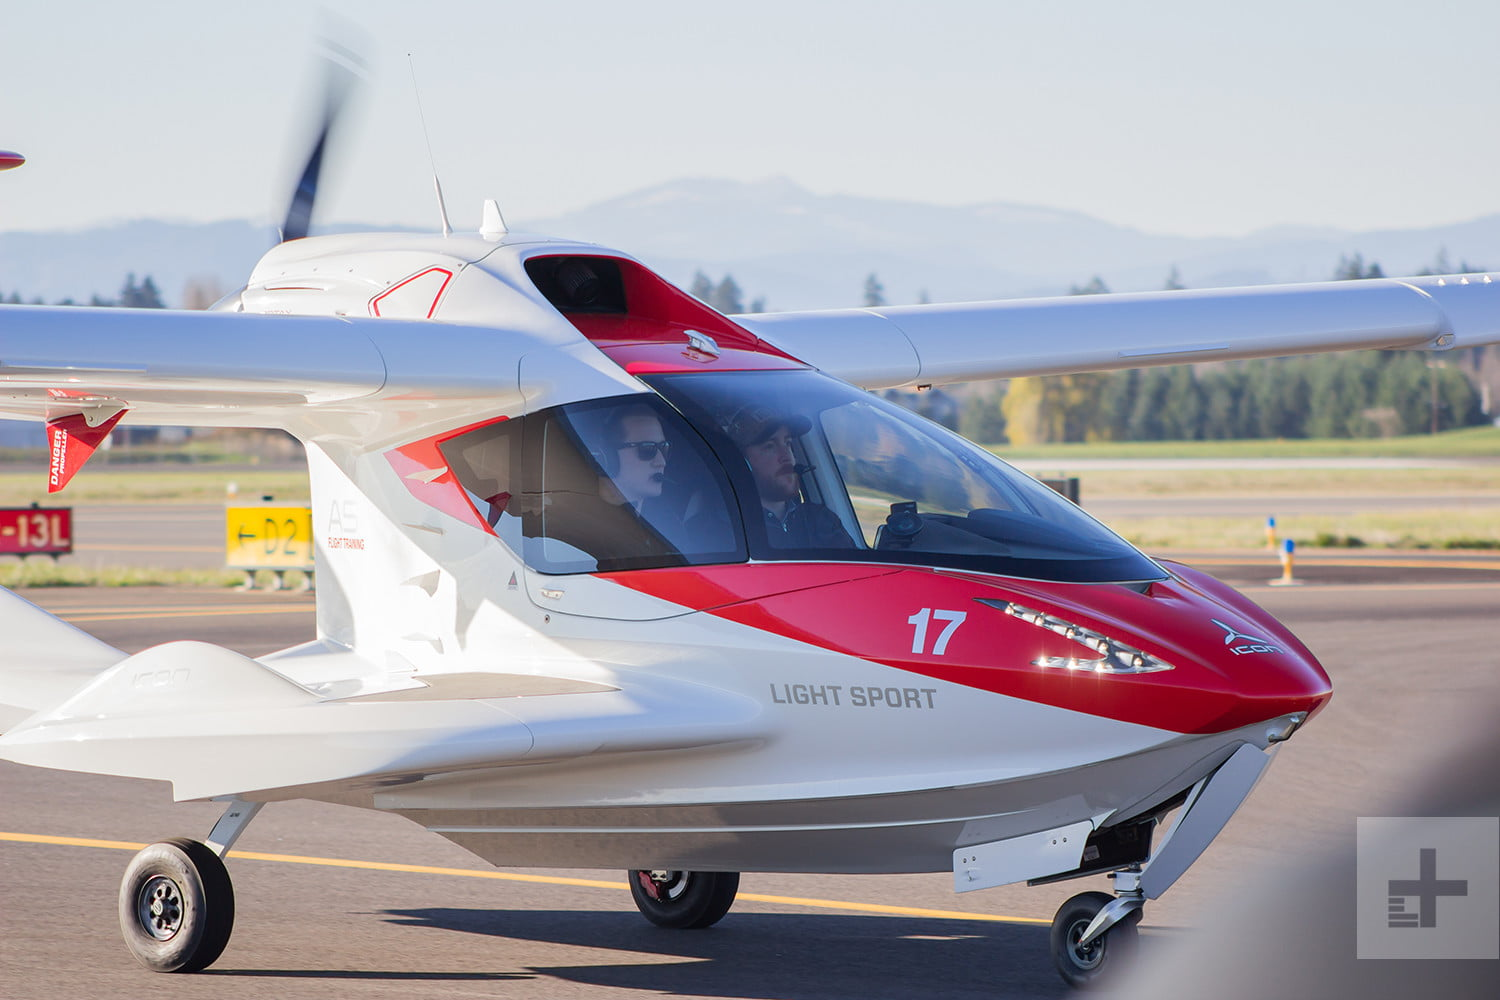 Meet the Icon A5: The High-Tech Airplane that Anyone Can Fly